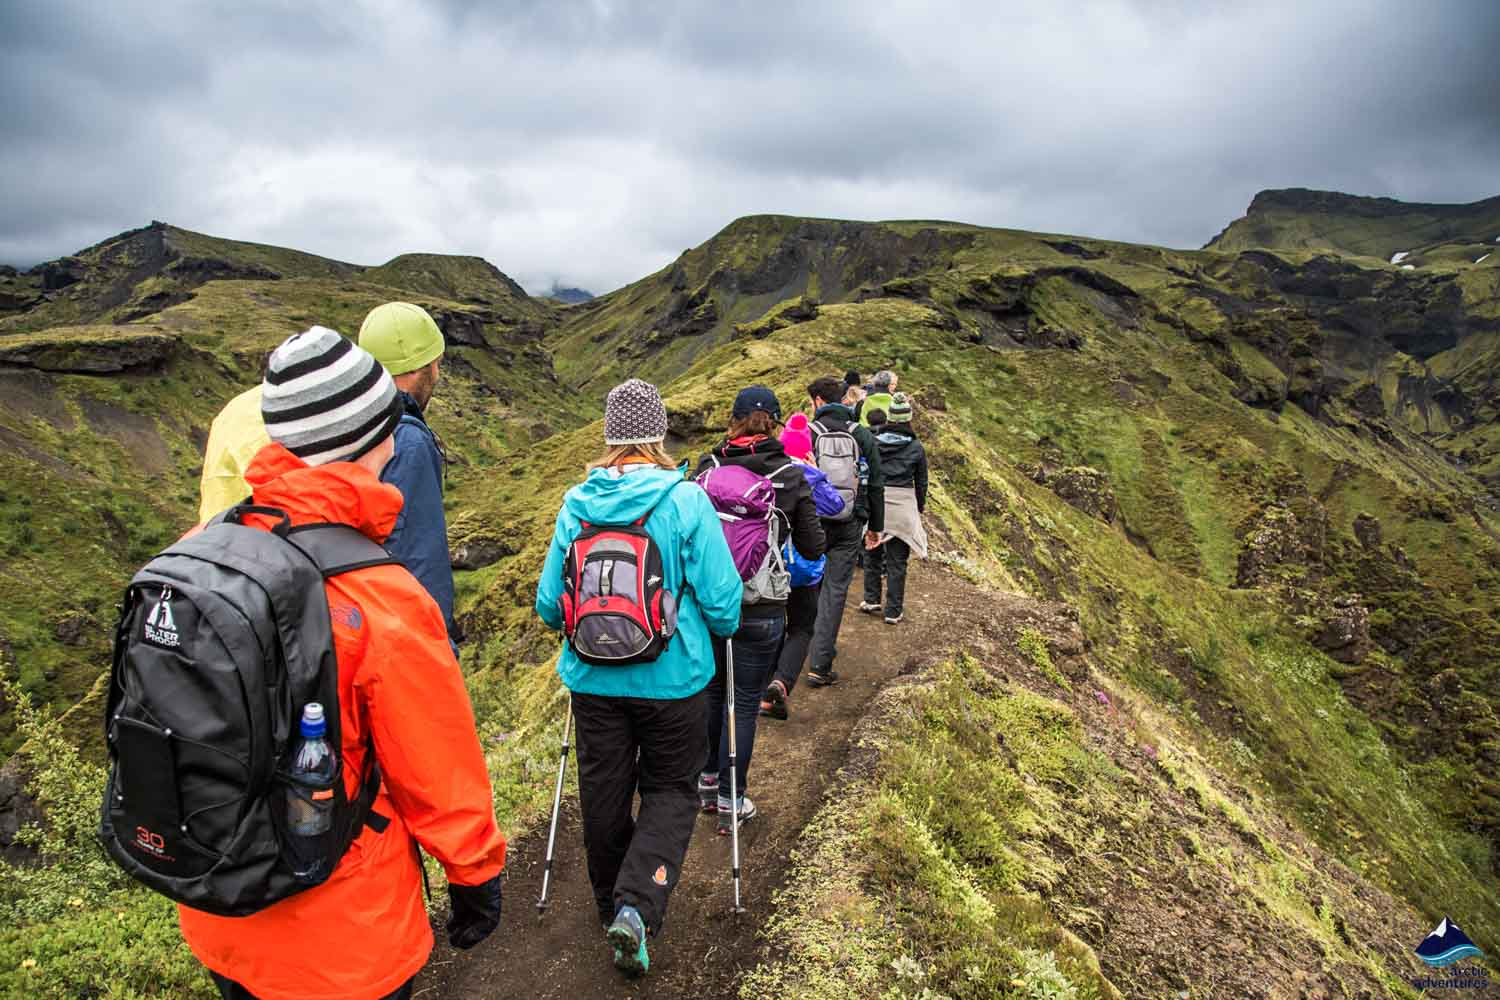 Thorsmork day hike in Iceland